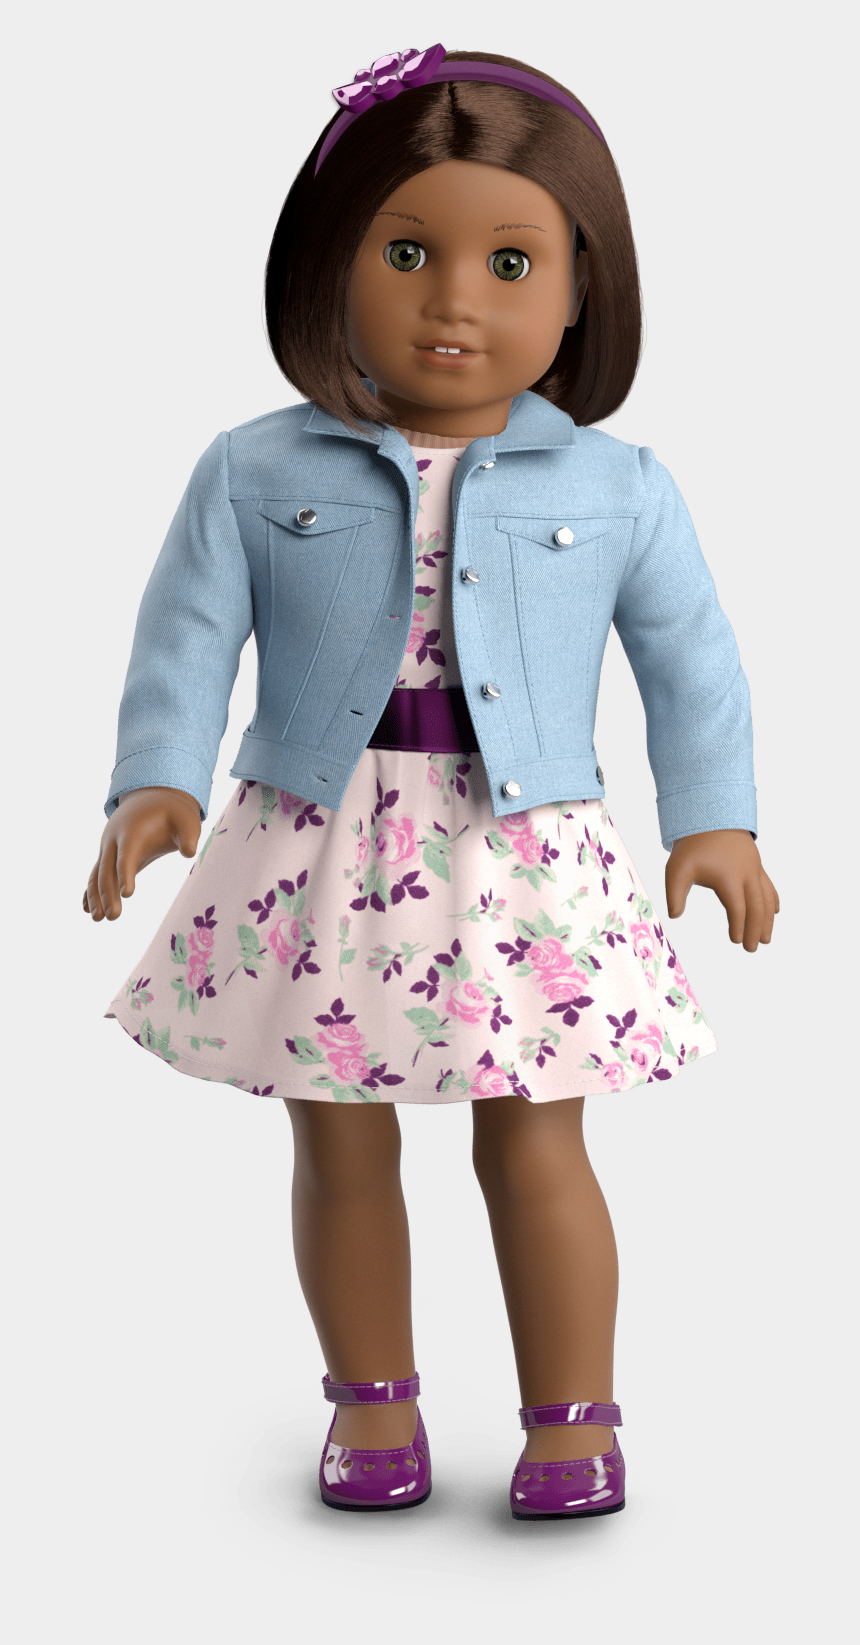 american girl doll clipart, Cartoons - American Girl Create Your Own Outfits